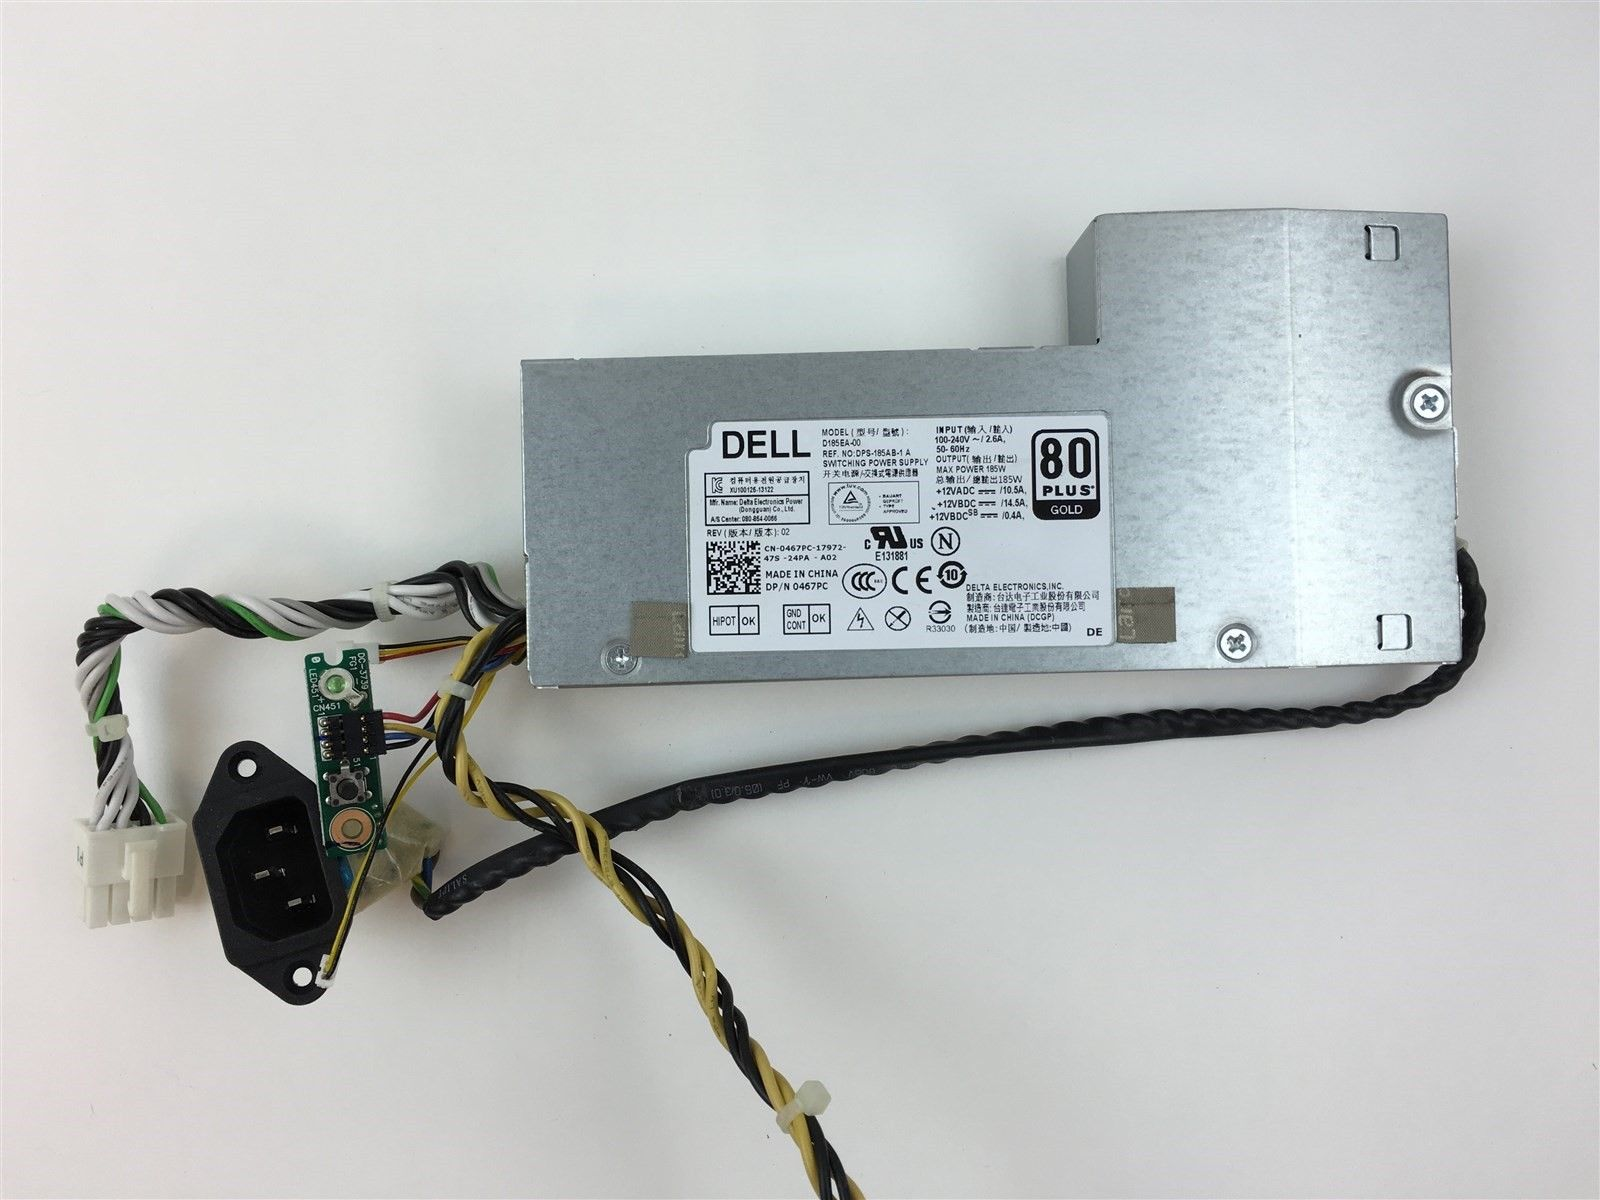 Dell AIO Inspiron 23 5348 Optiplex 9030 D185EA-00 185W Power Supply 467PC 0467PC